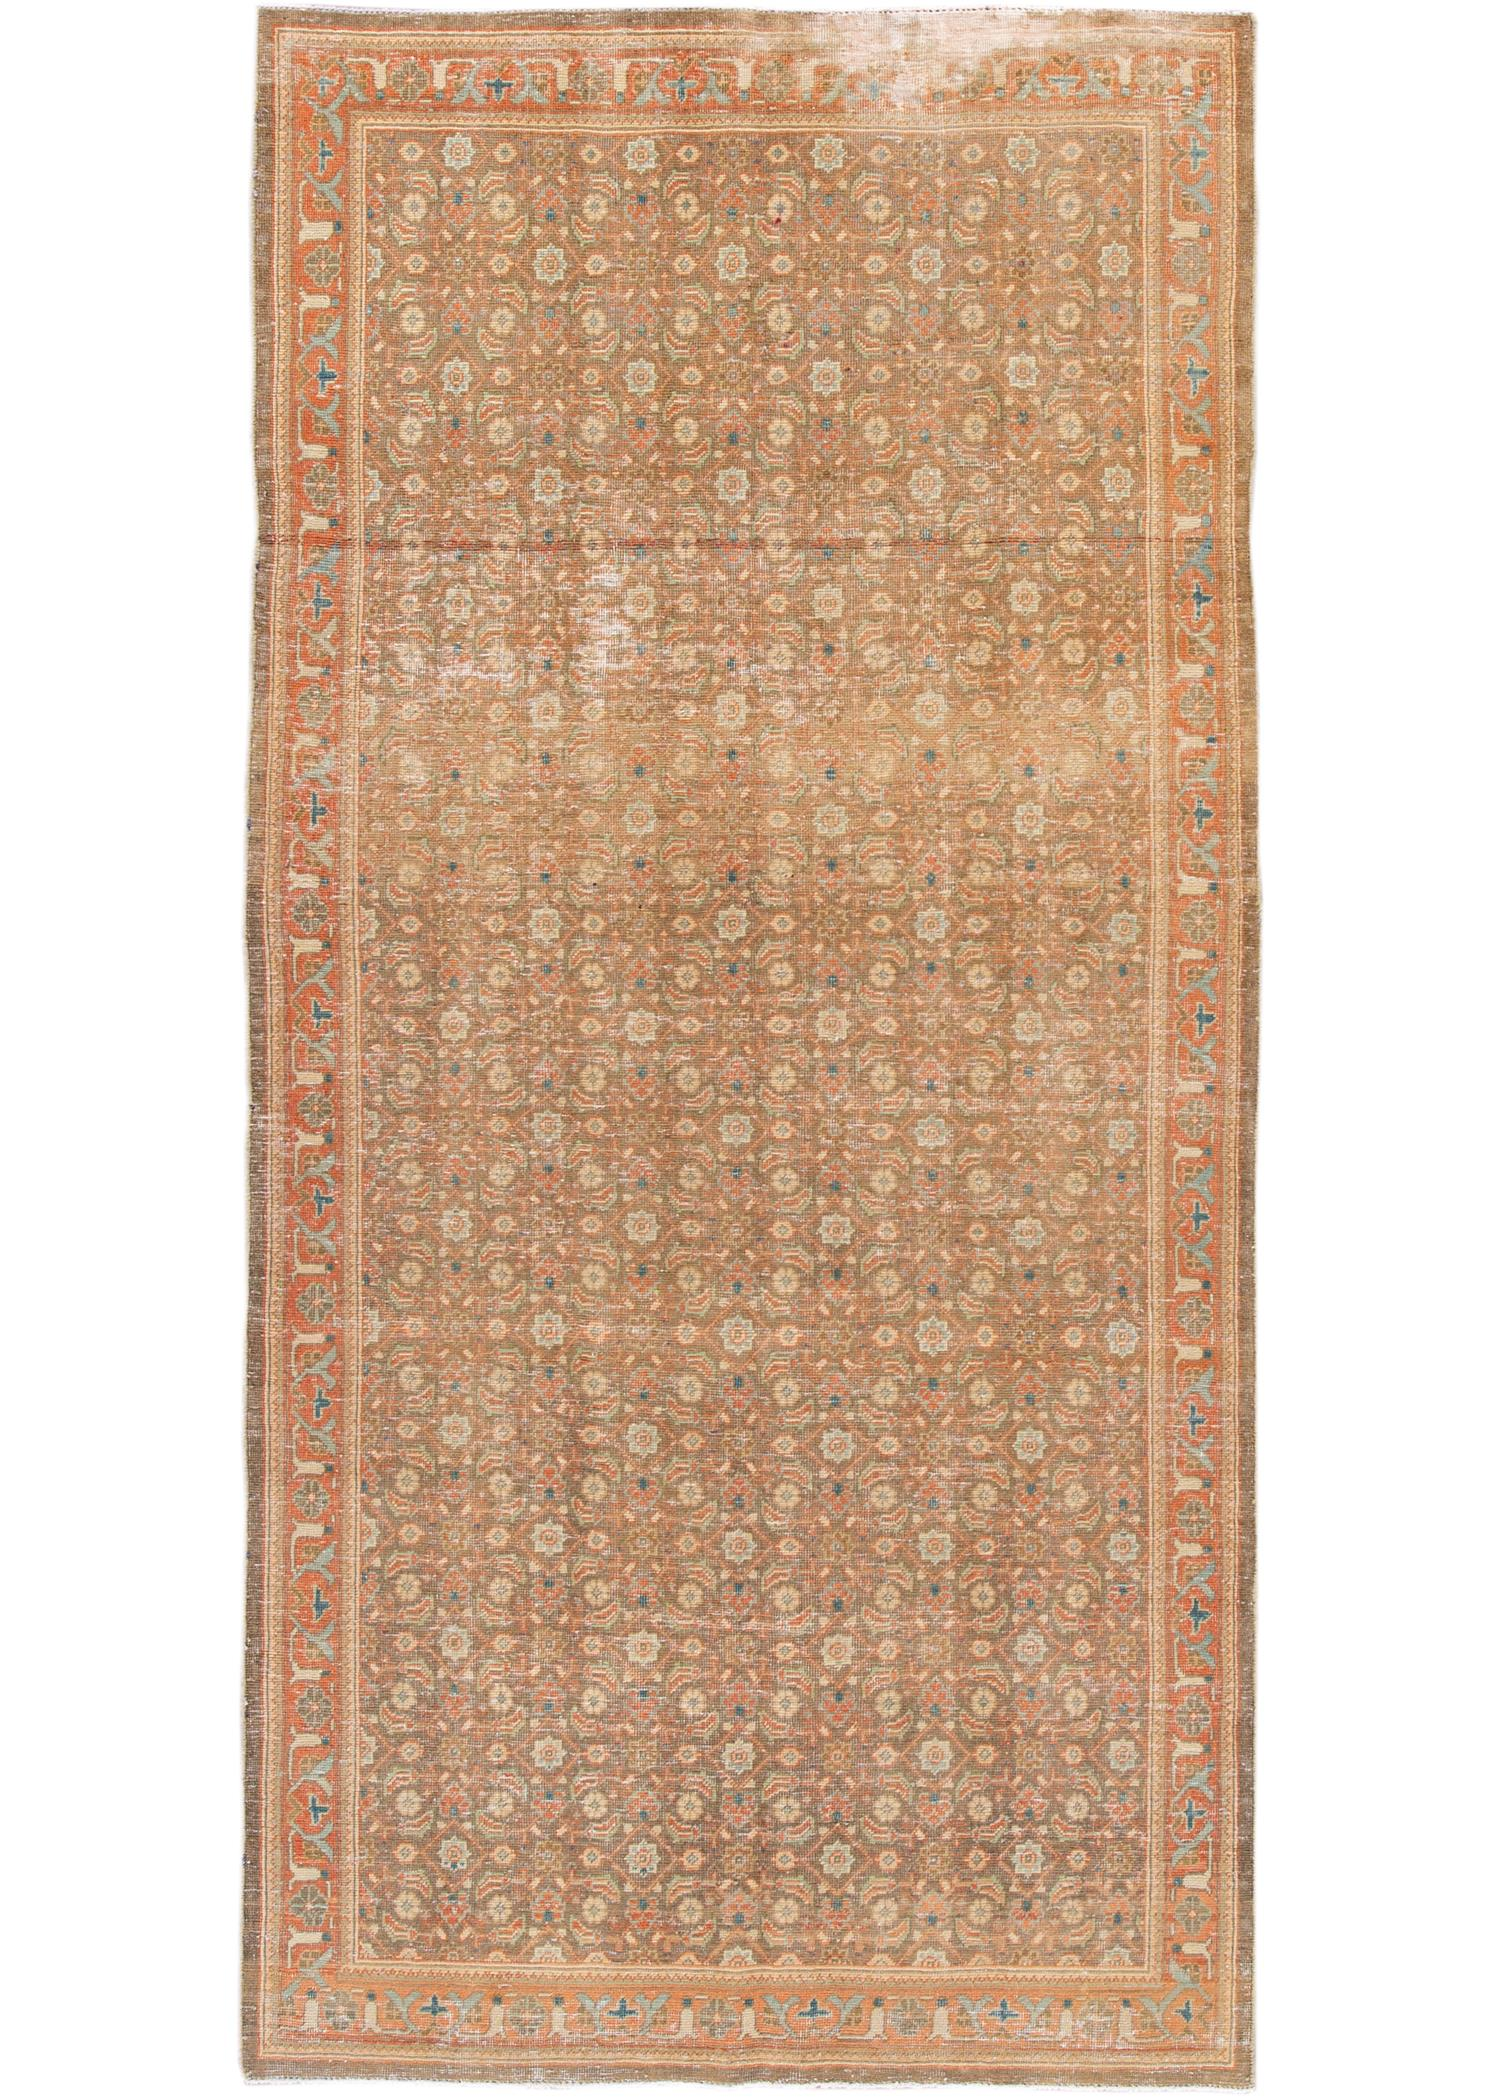 Antique Persian Rug, 5X10